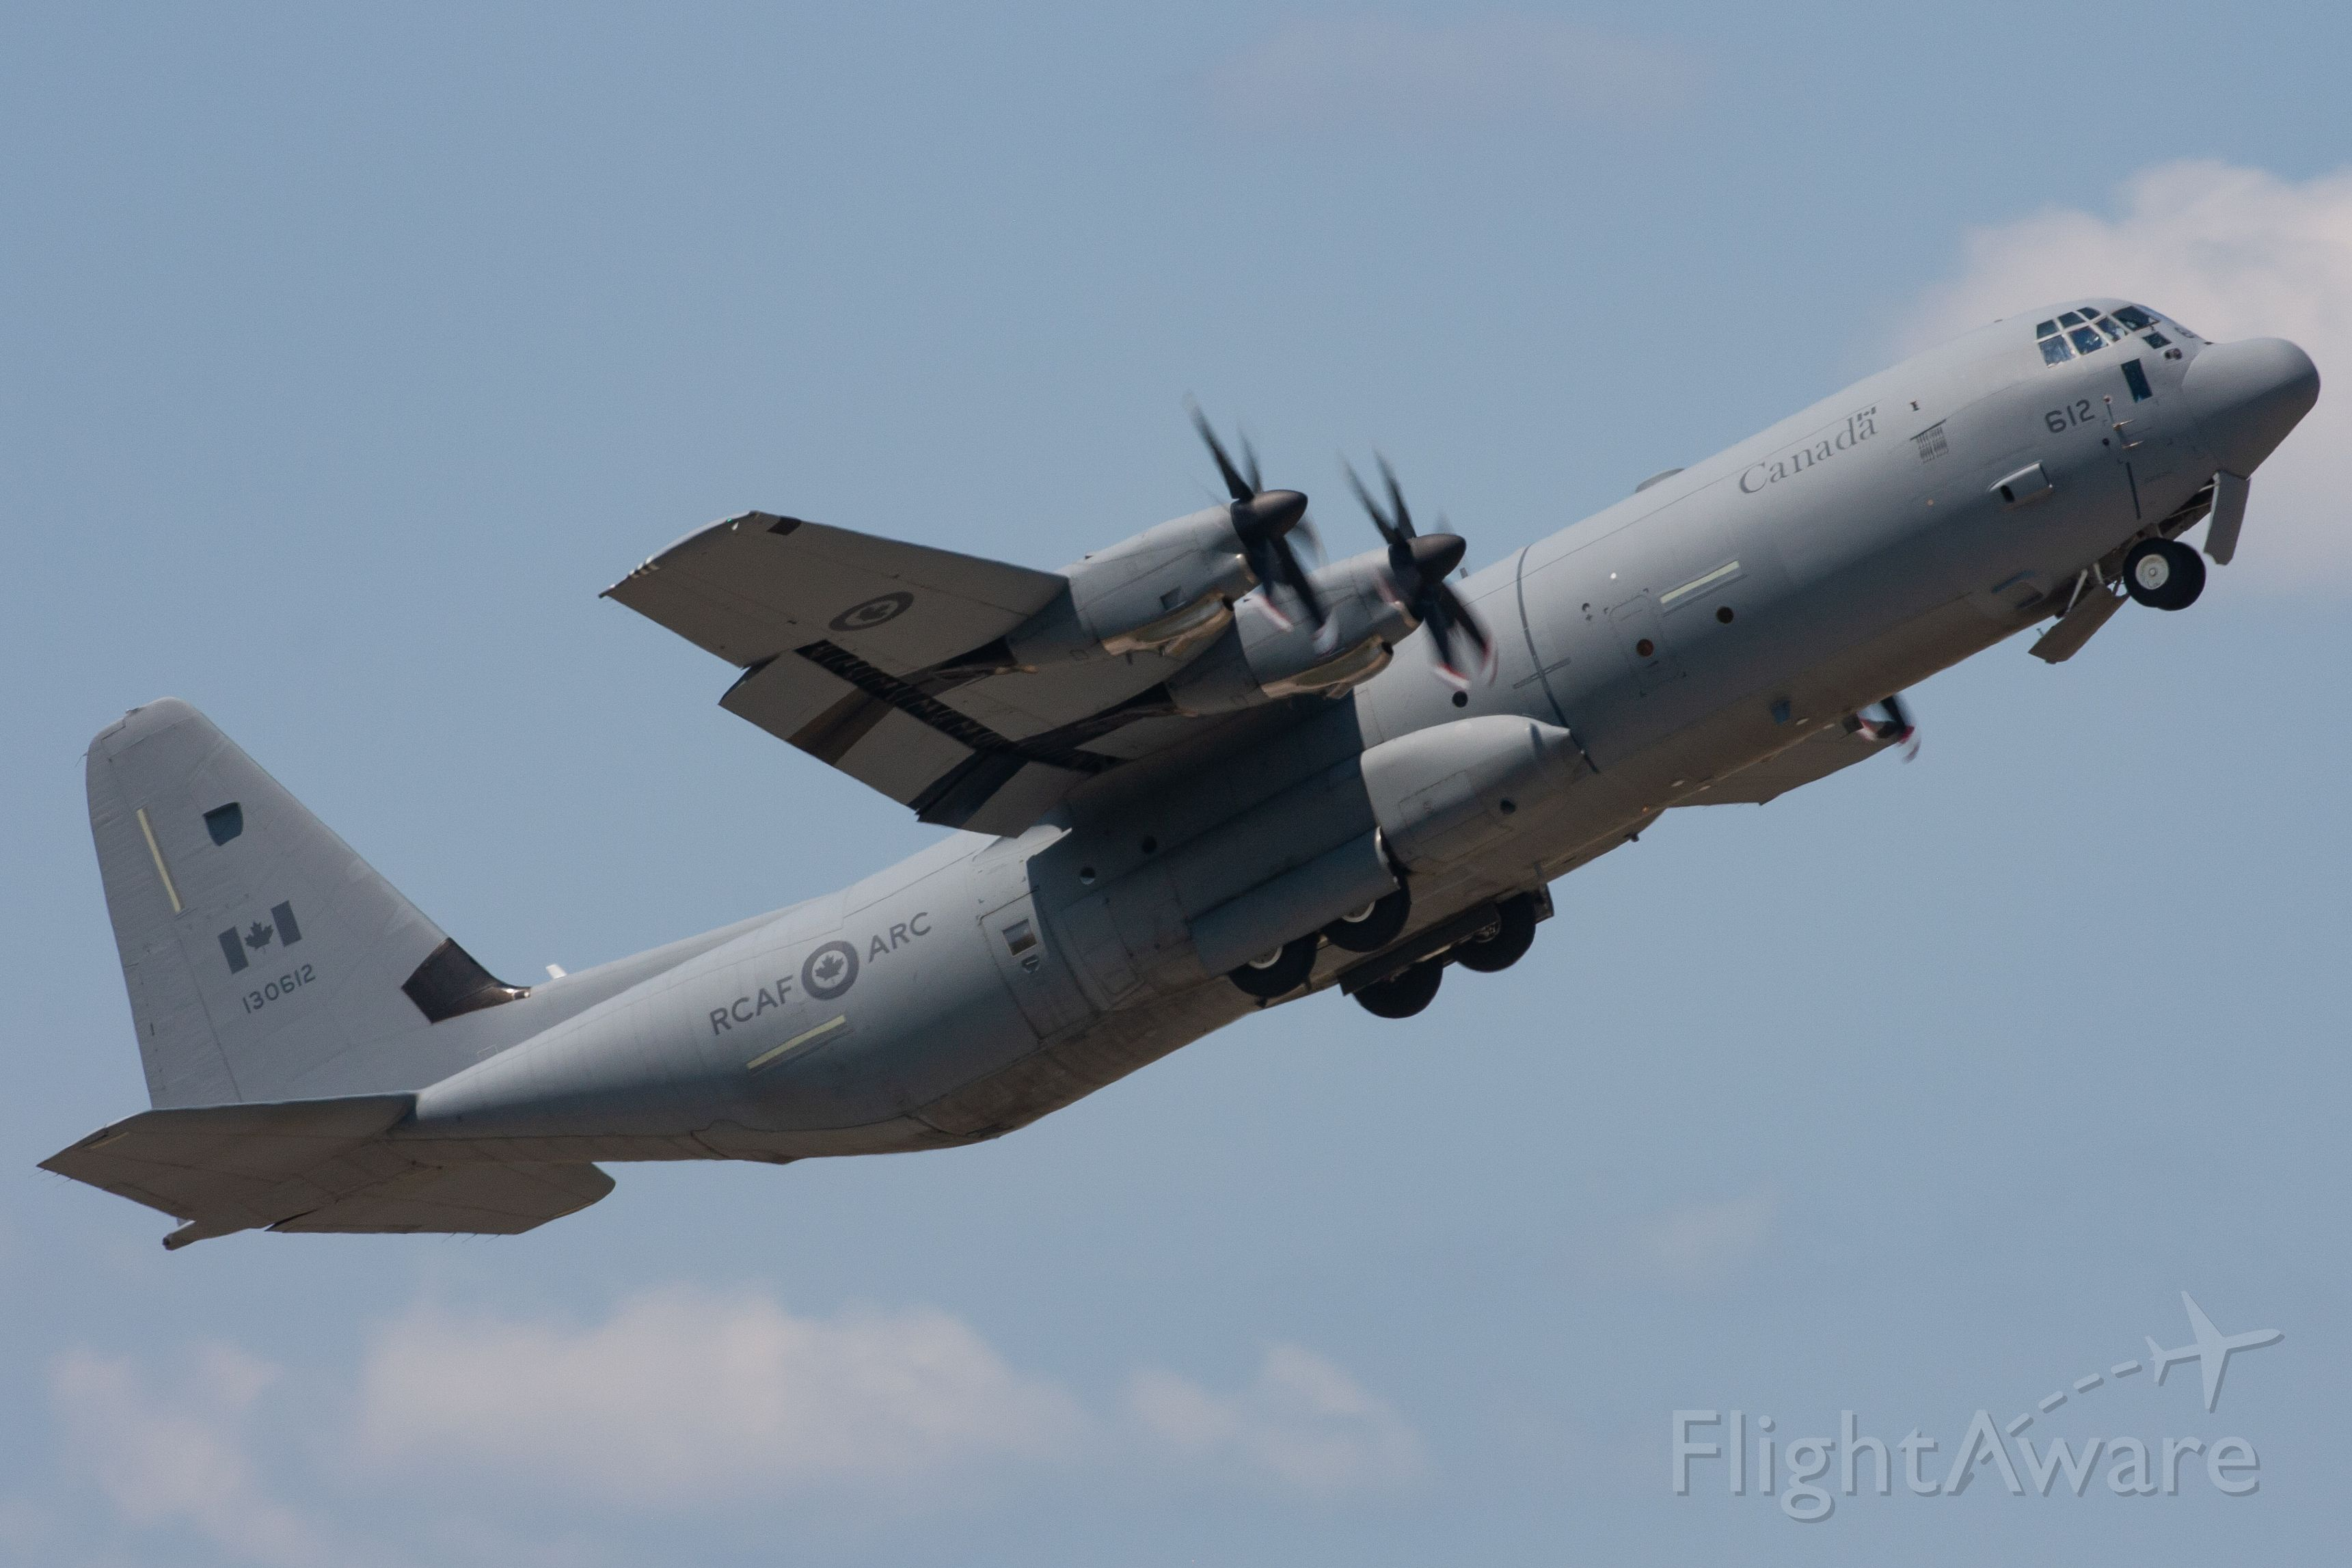 Lockheed C-130 Hercules (13-0612) - RCAF CC-130 from 436 Transport Squadron at Thunder Over Michigan 2019